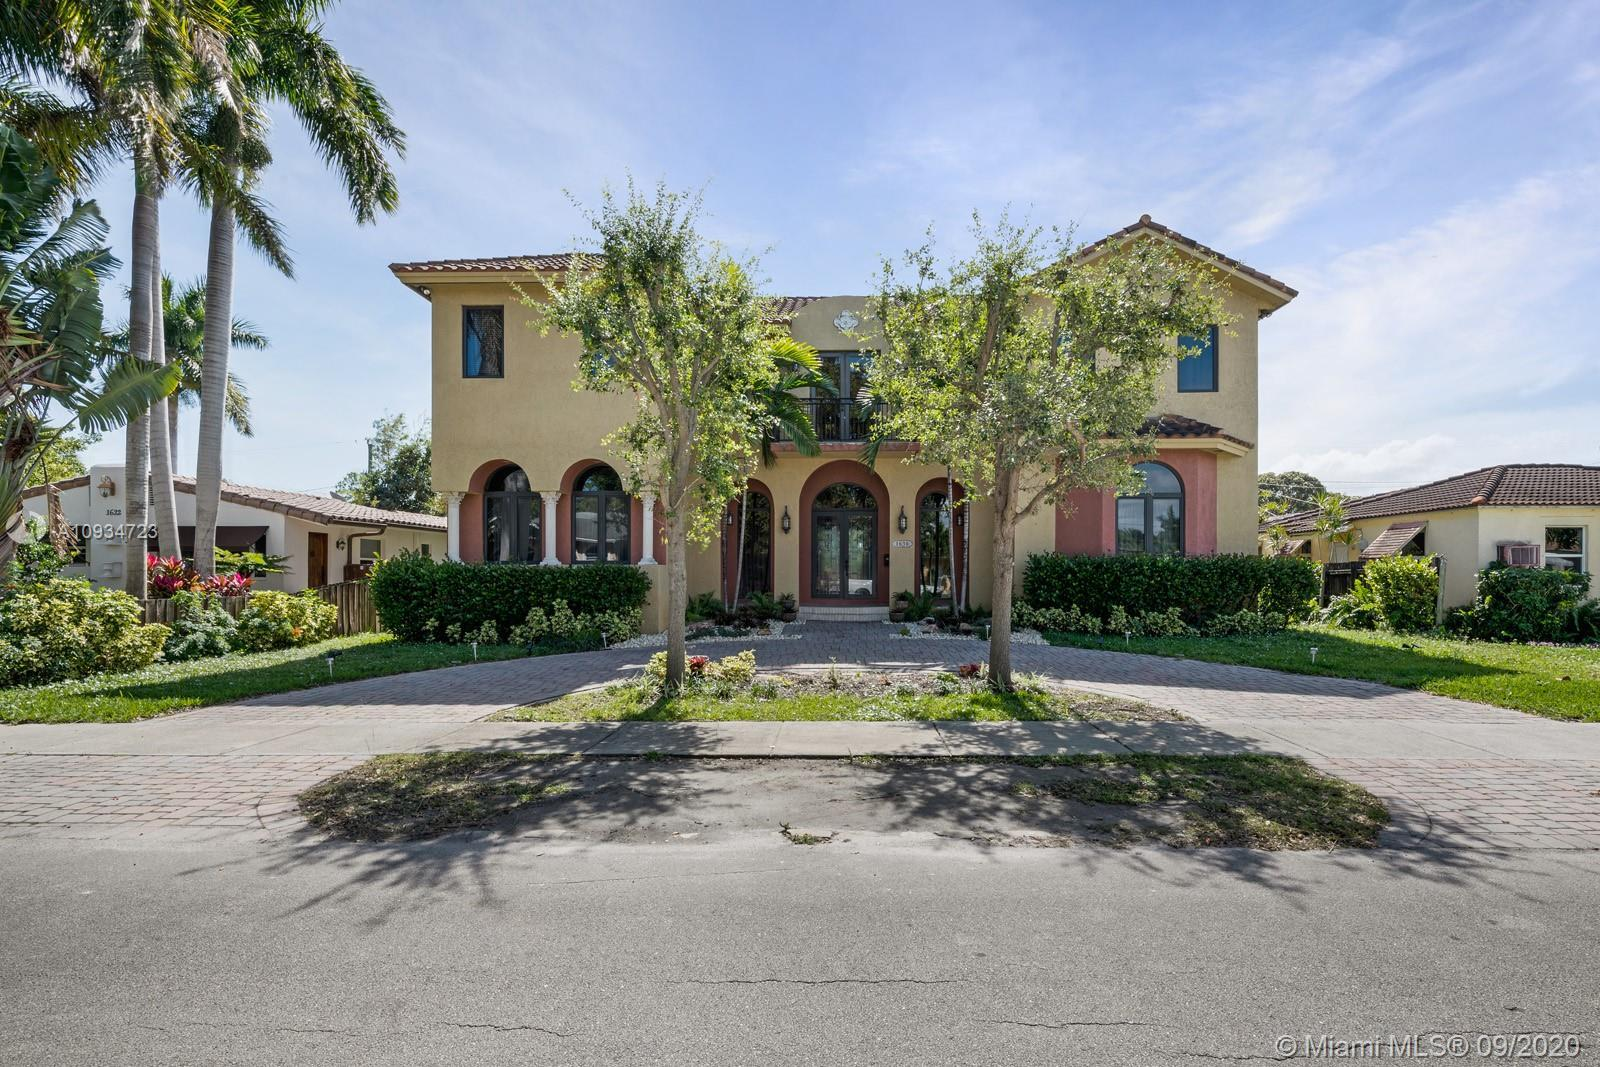 Luxurious 2-story custom built house in great location!! There is plenty of room for kids and compan